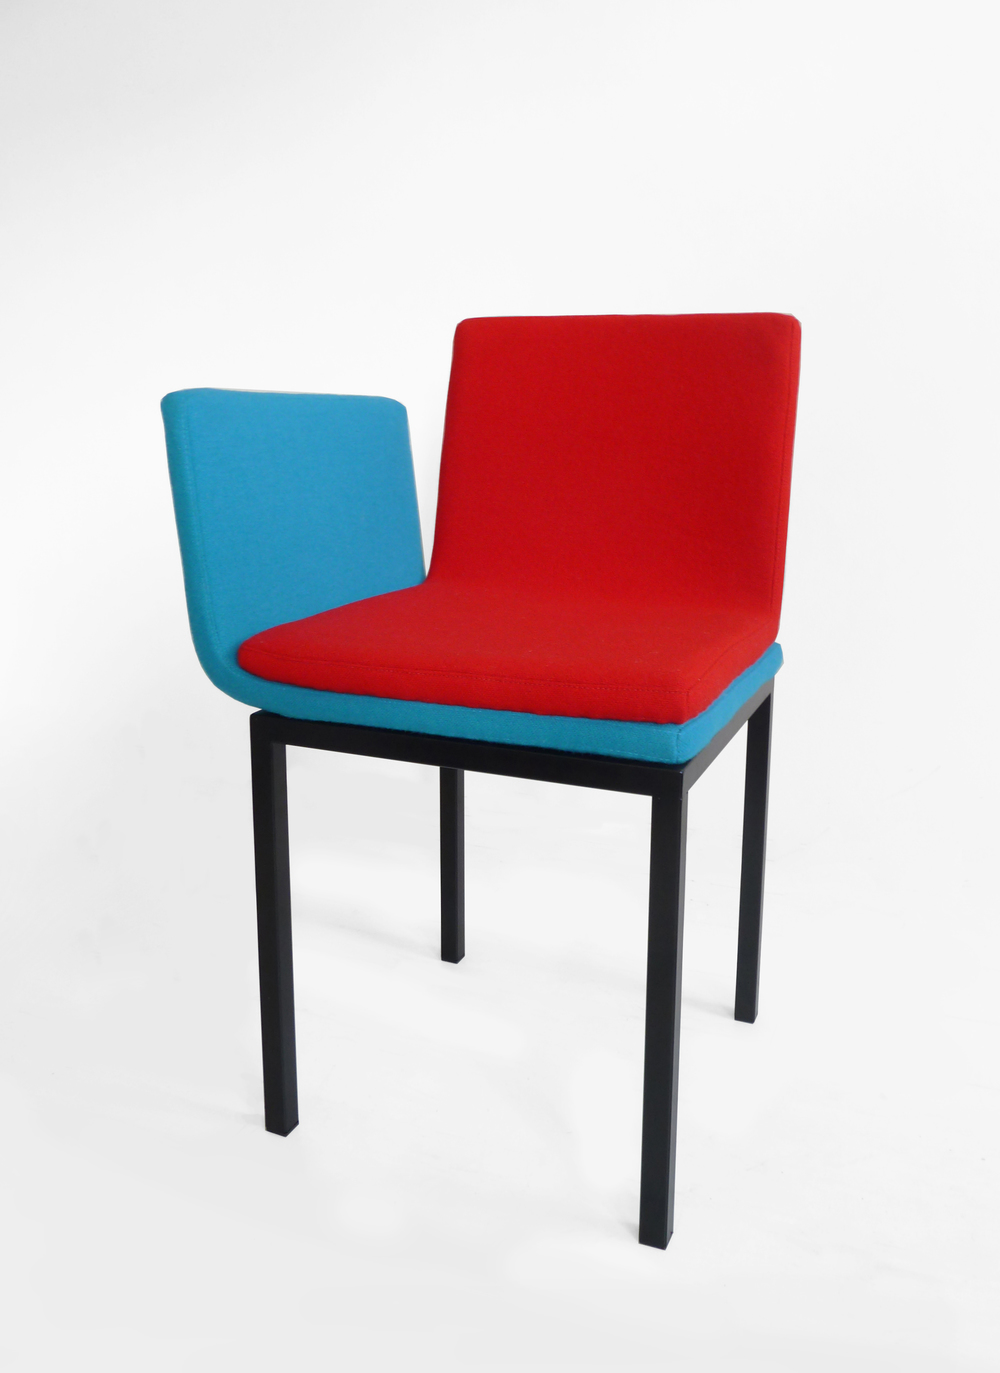 red blue chair 4.jpg